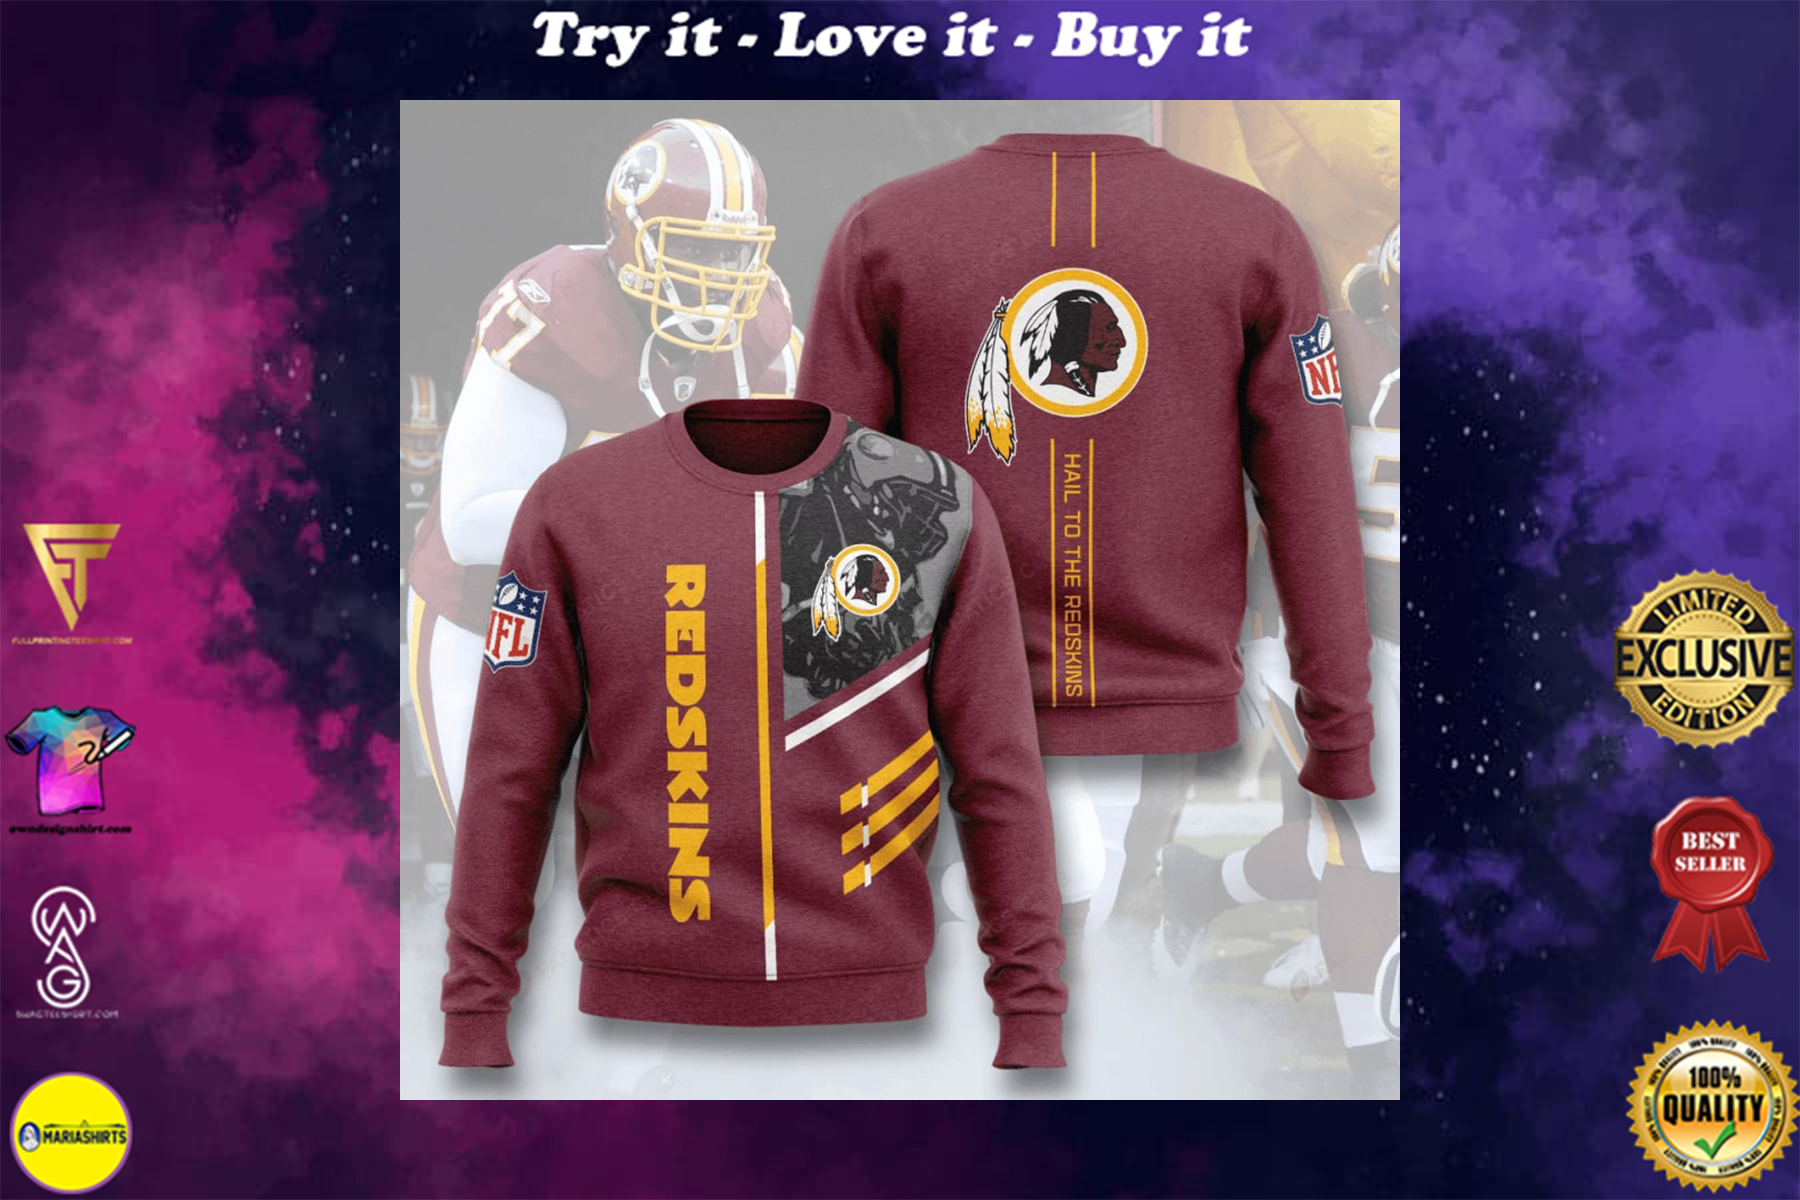 [special edition] washington redskins hail to the redskins full printing ugly sweater - maria